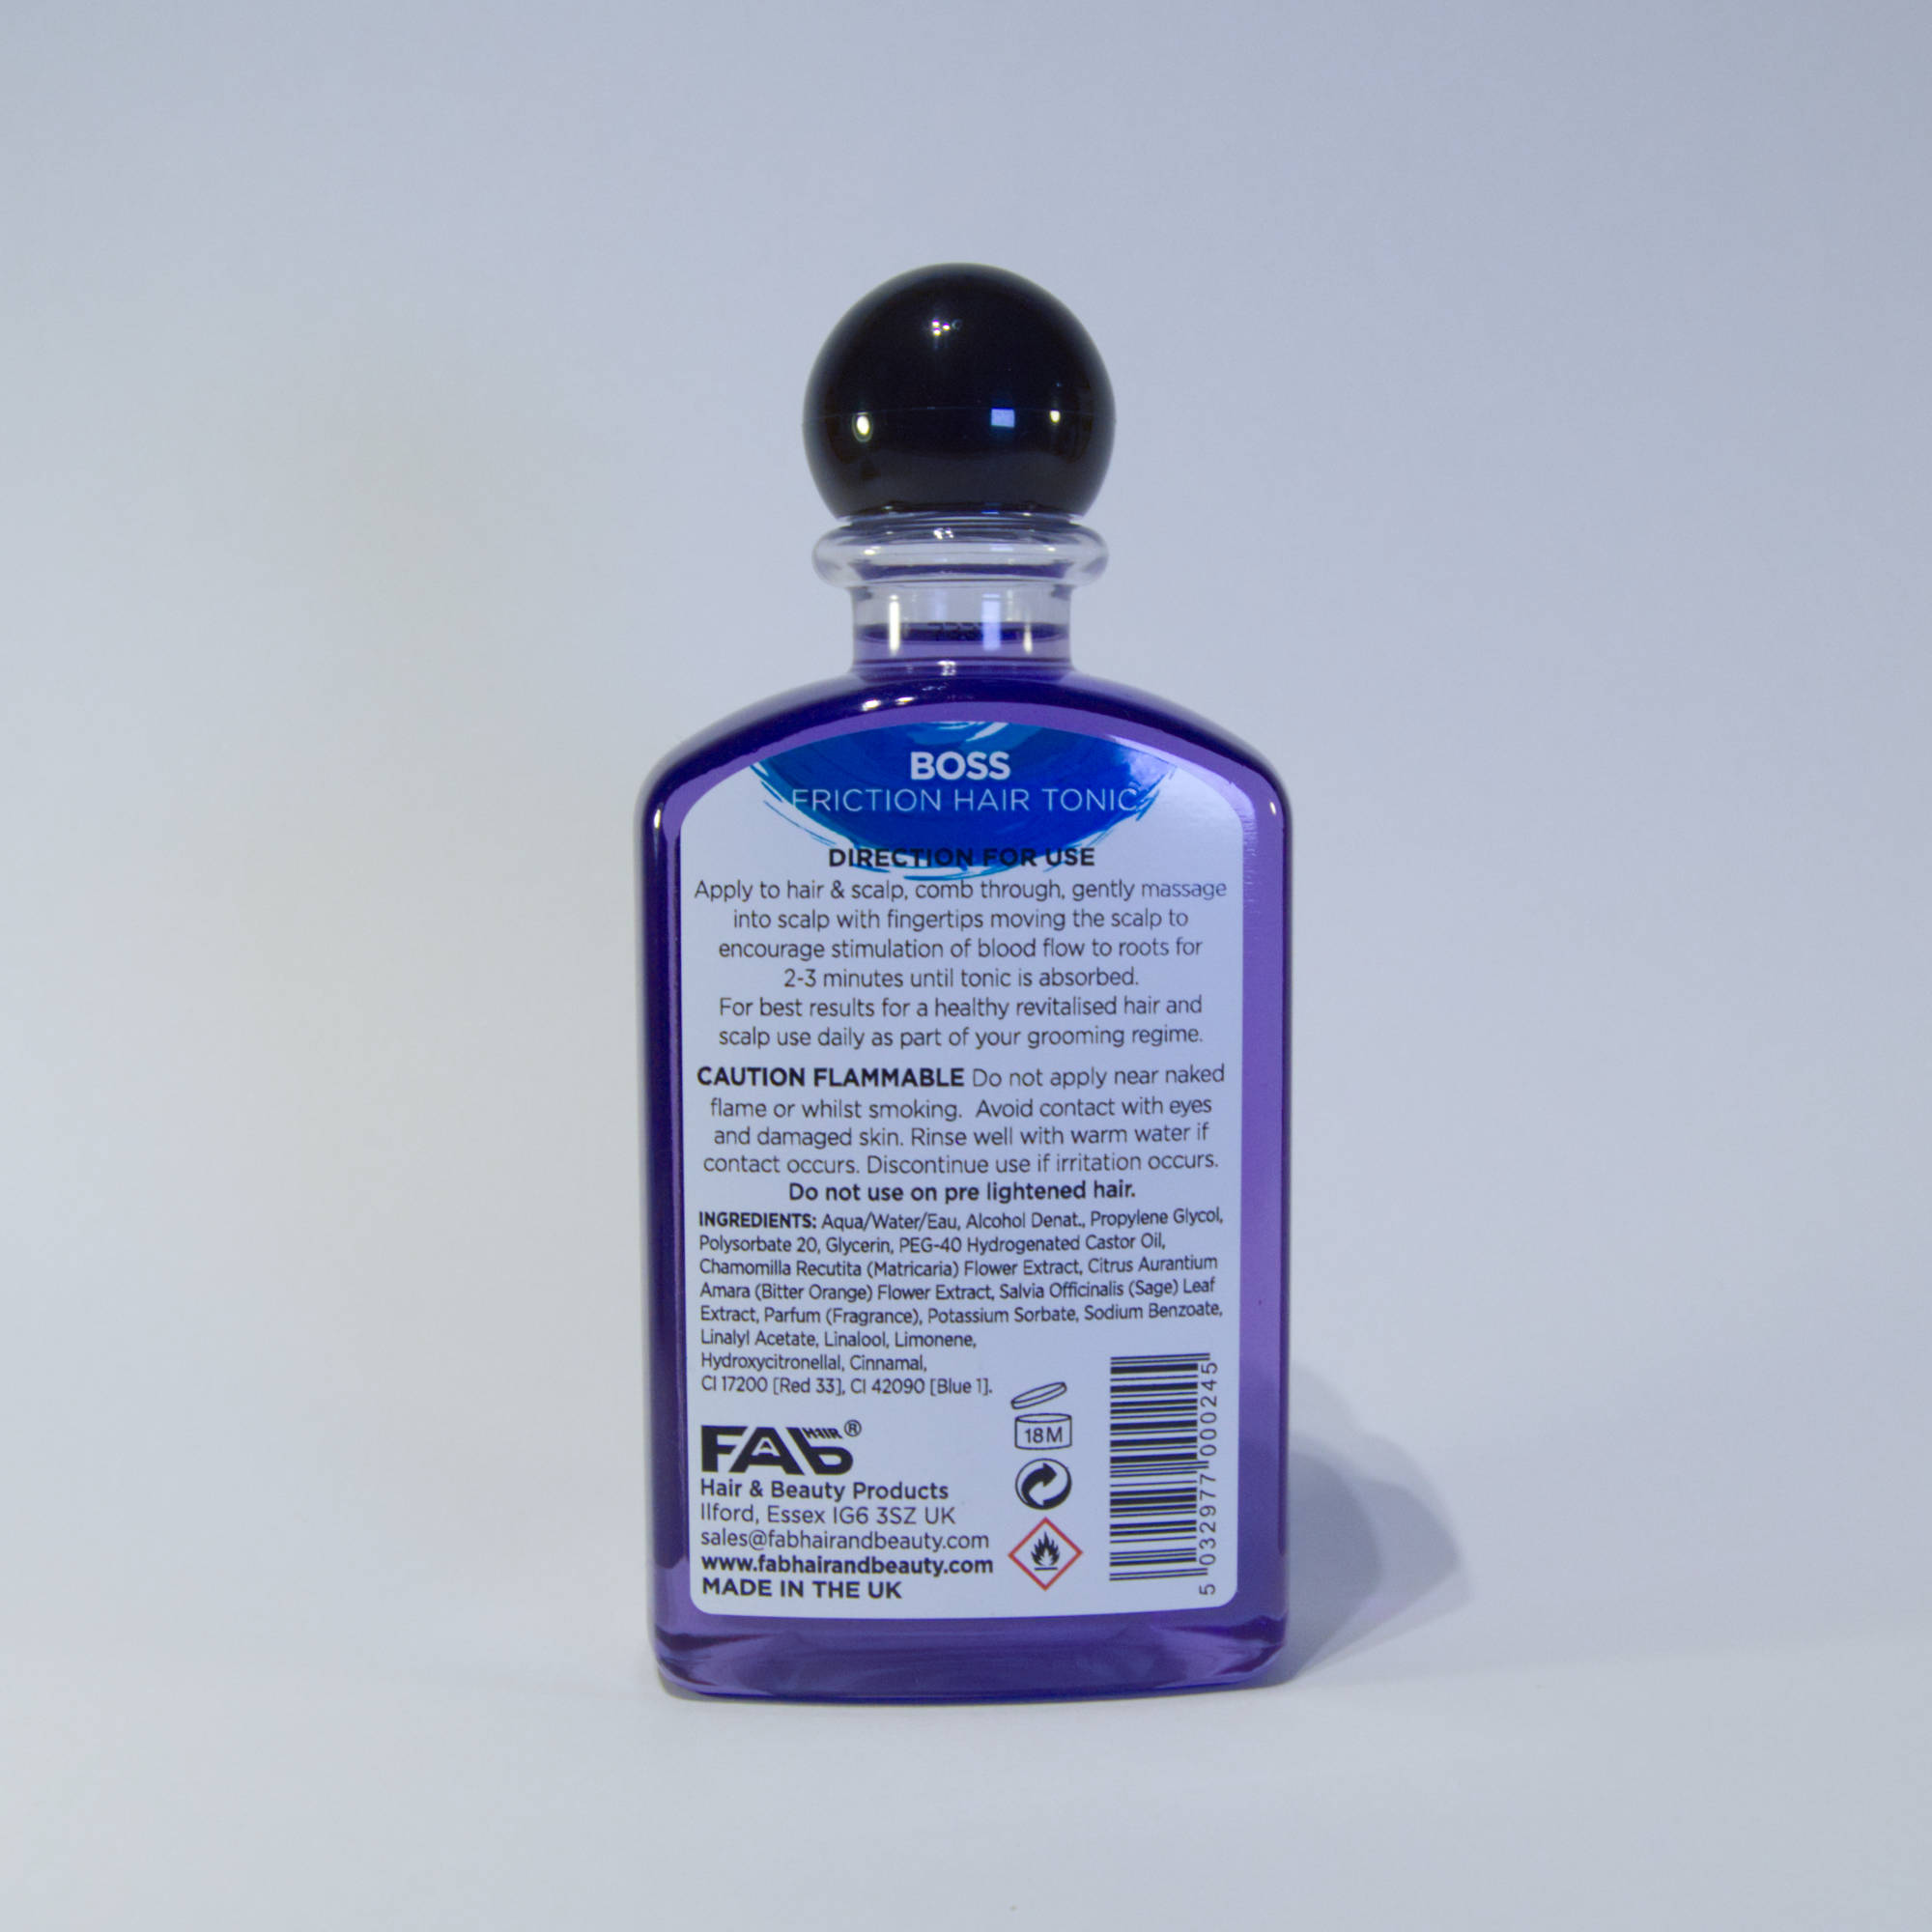 250ml bottle of Boss flavoured FAB friction hair tonic (rear view)